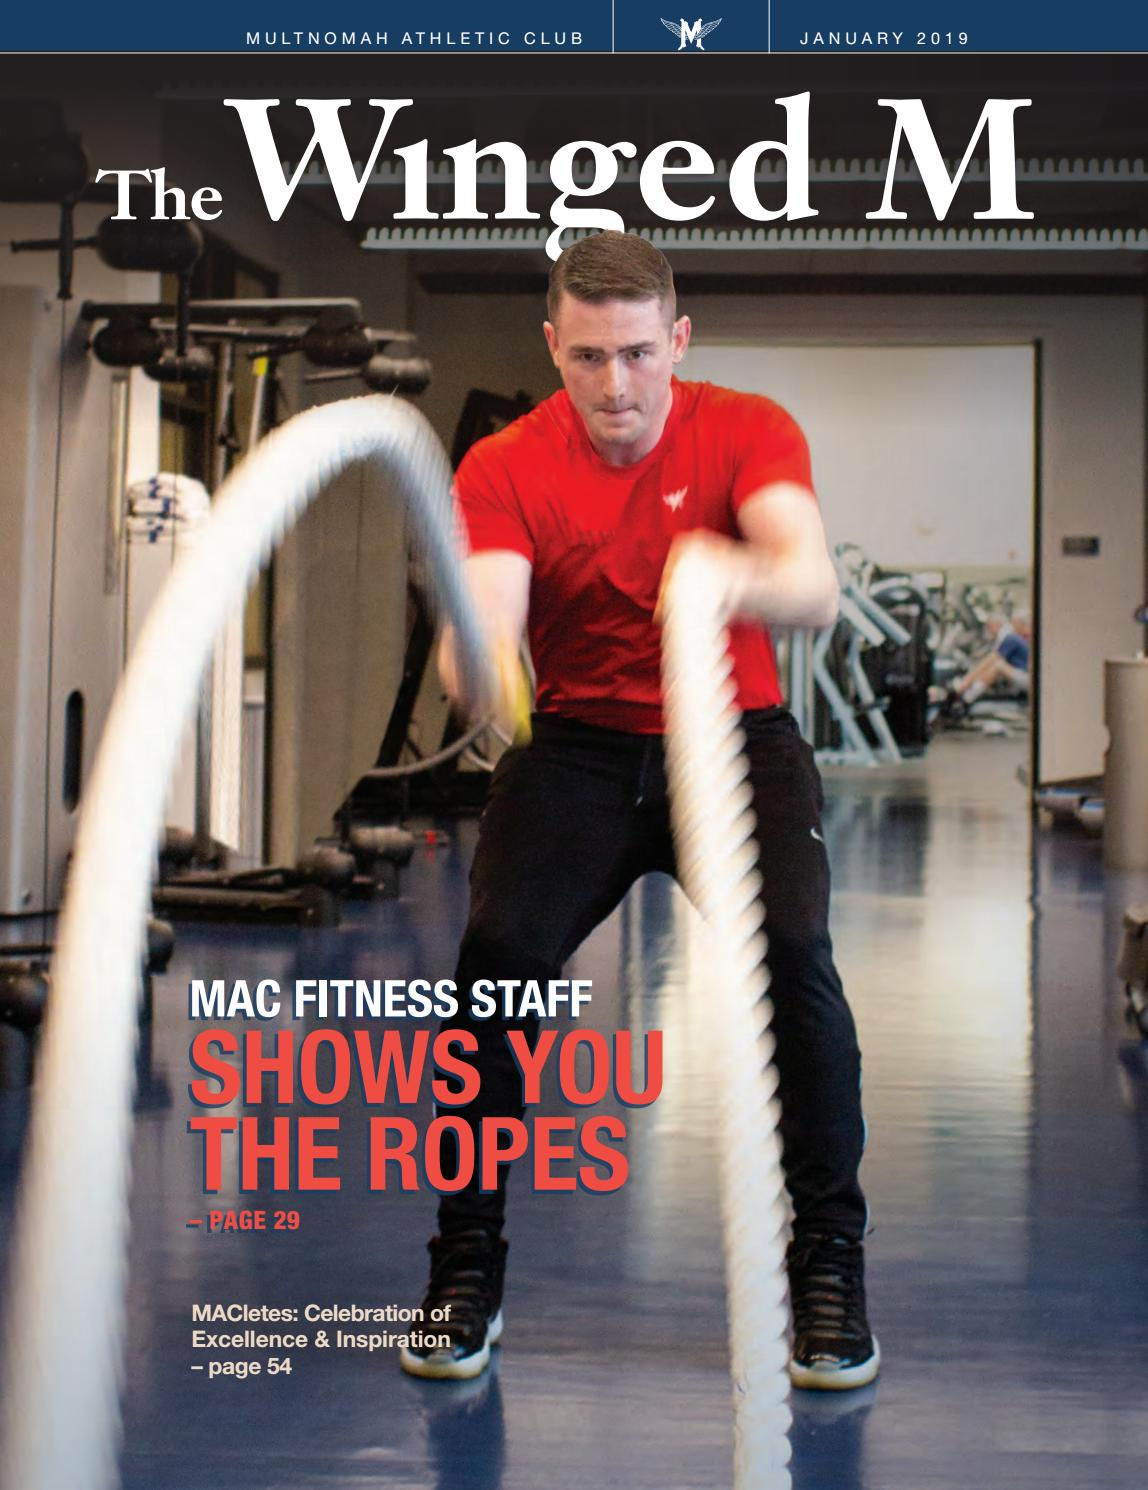 The Winged M, January 2019 by Multnomah Athletic Club - issuu